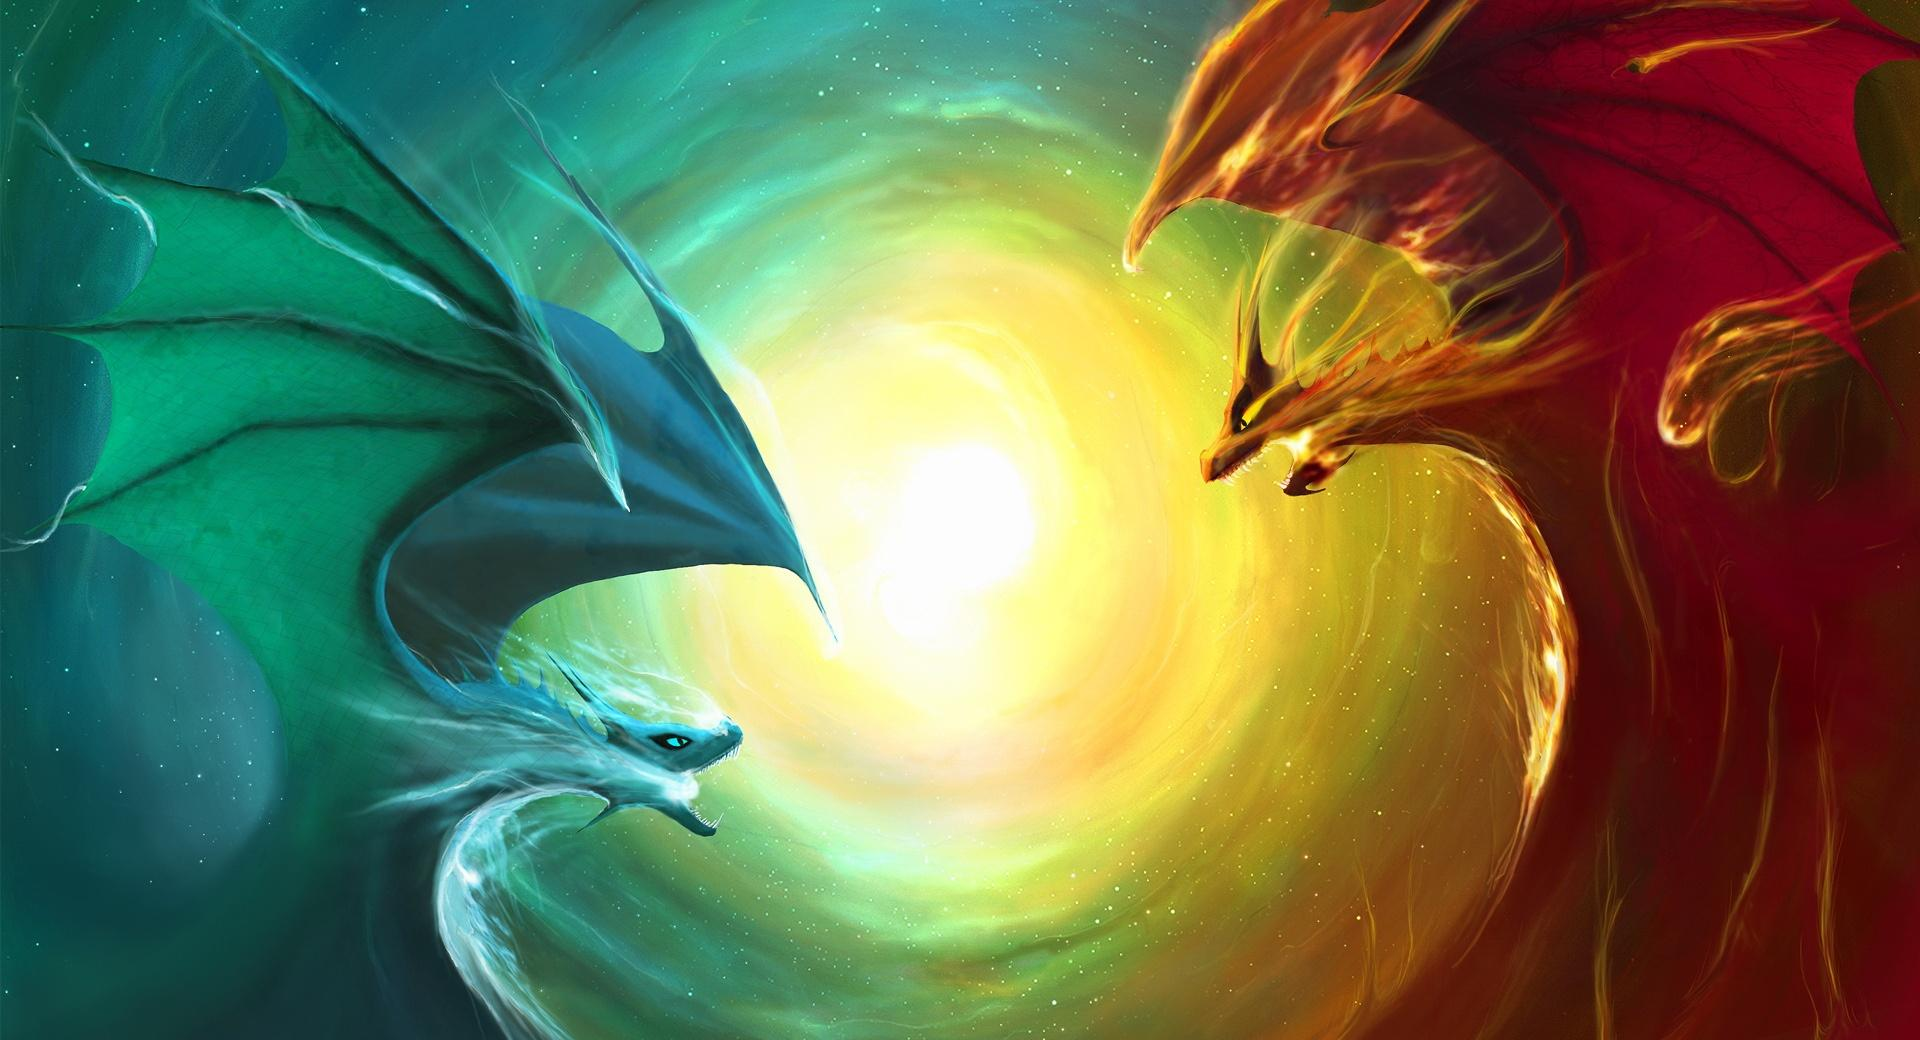 Fire Dragon Vs Water Dragon wallpapers HD quality